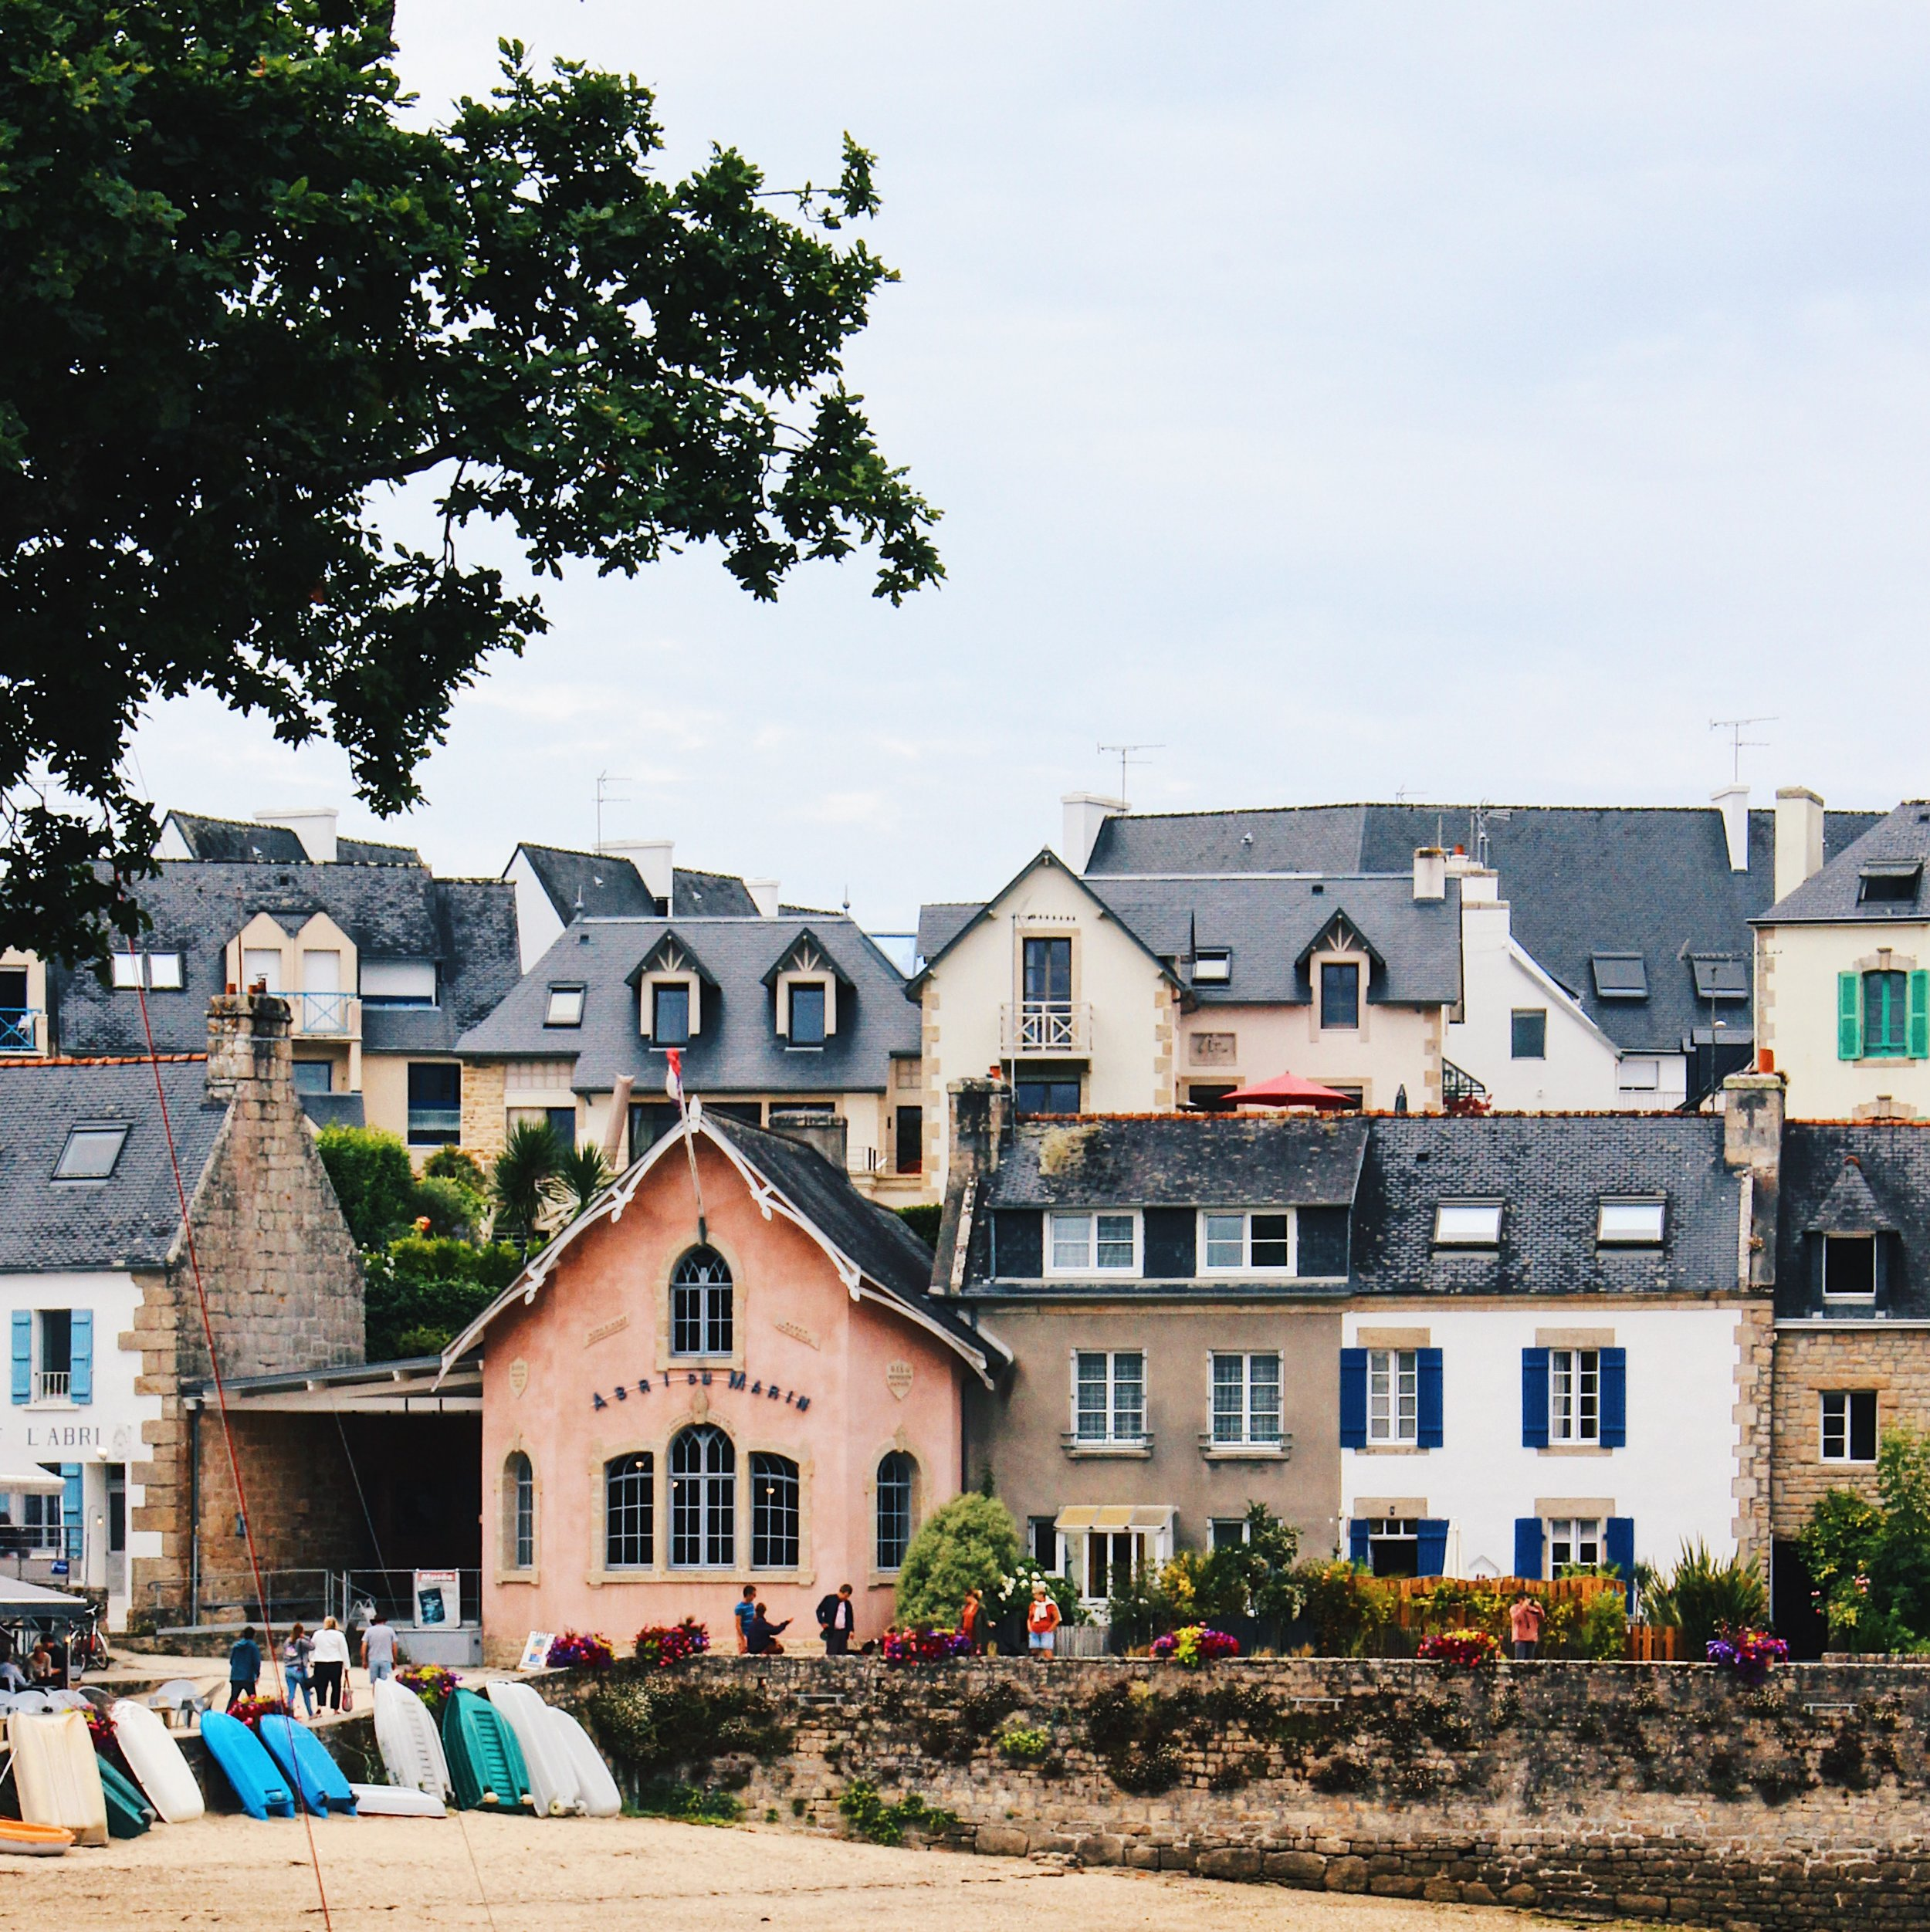 The stunning village of Sainte Marine. My favourite place we visited.